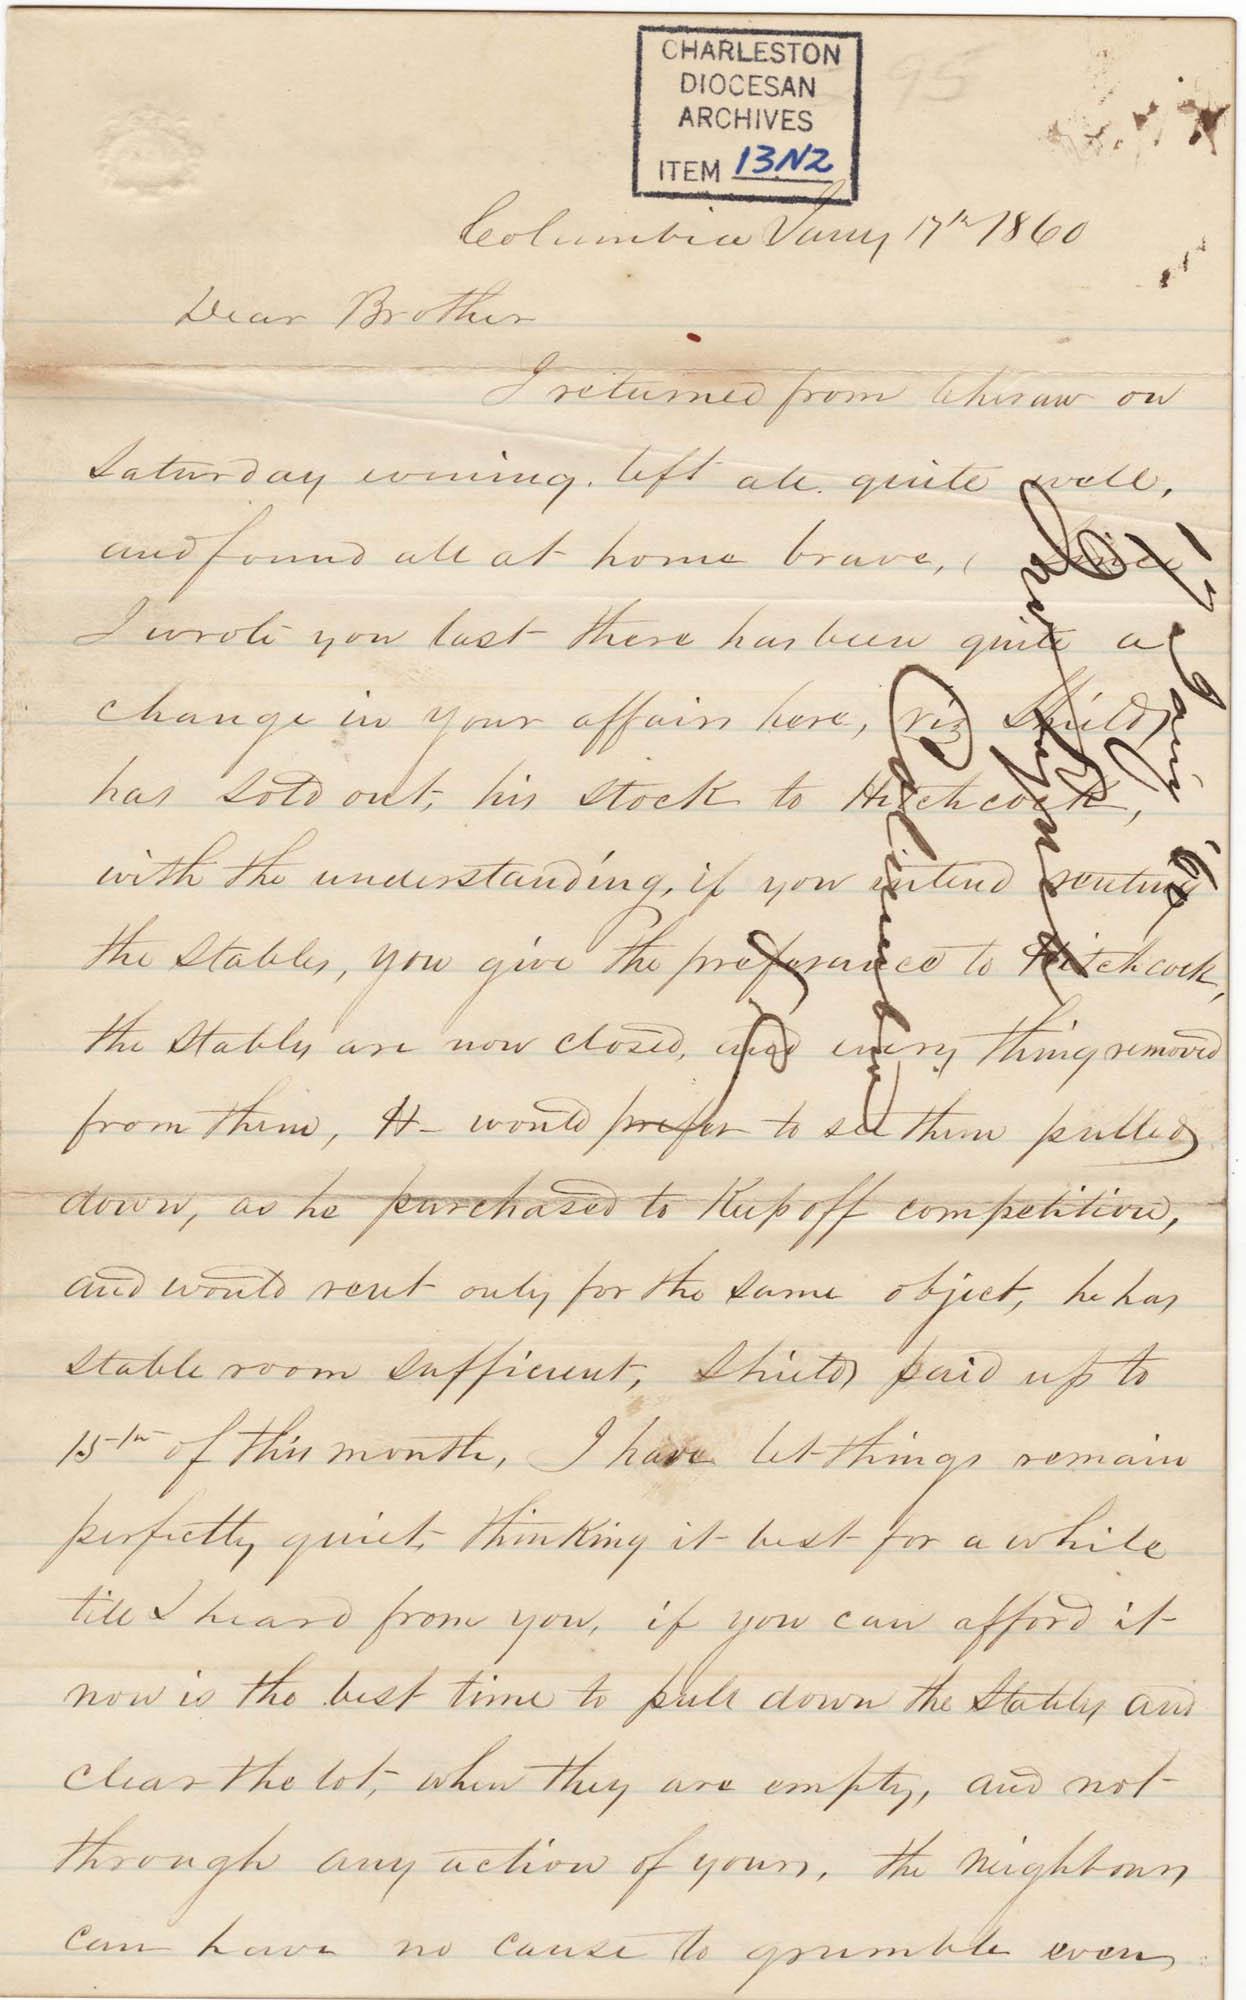 091. John Lynch to Bp Patrick Lynch -- January 17, 1860